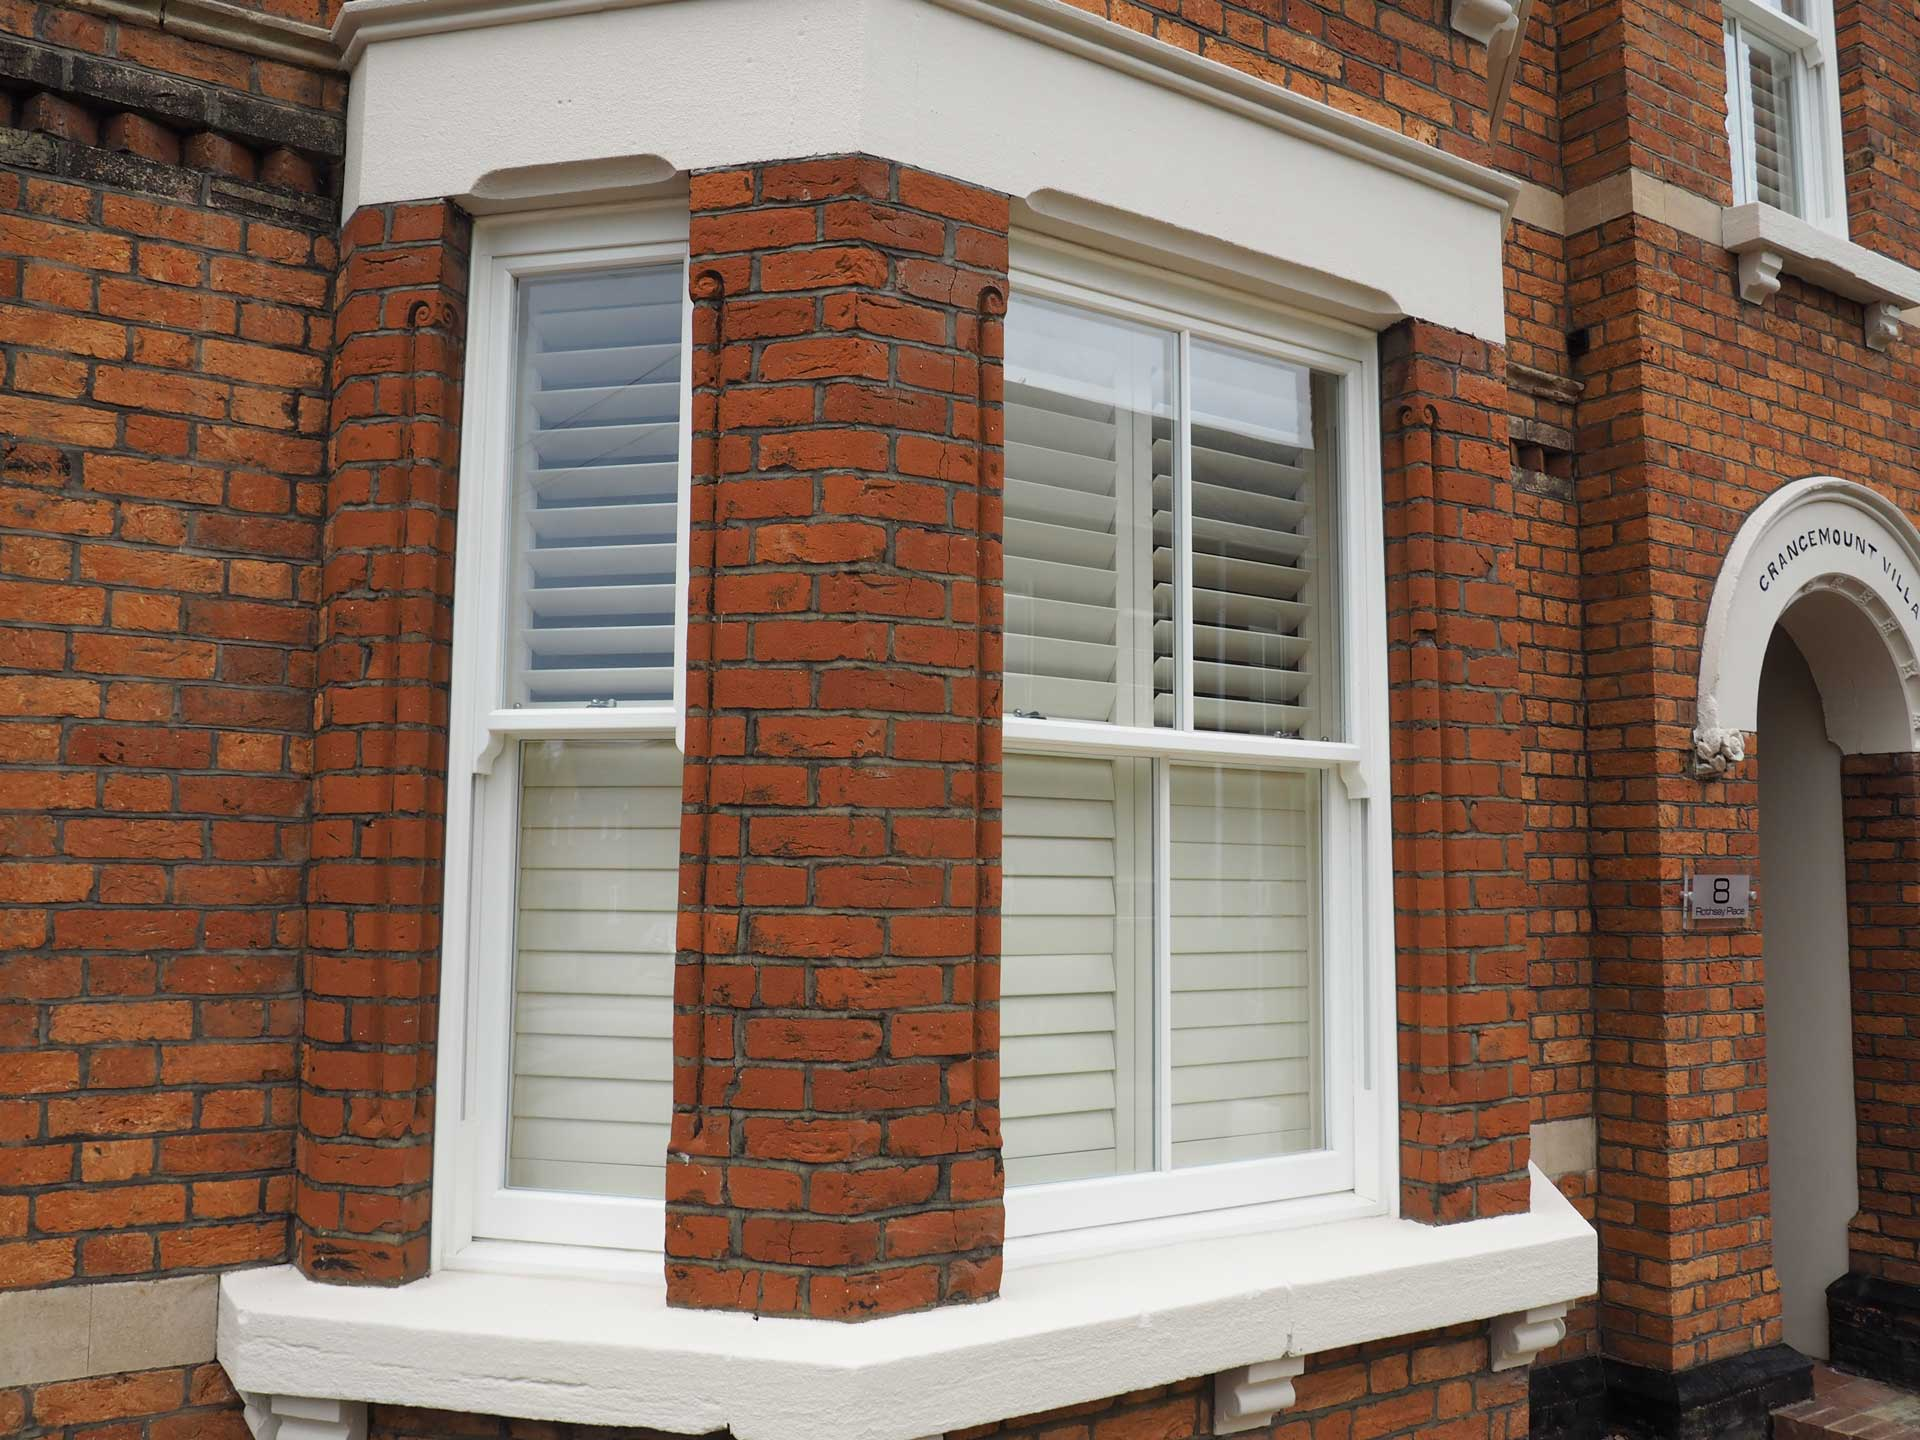 upvc window designs, Surrey